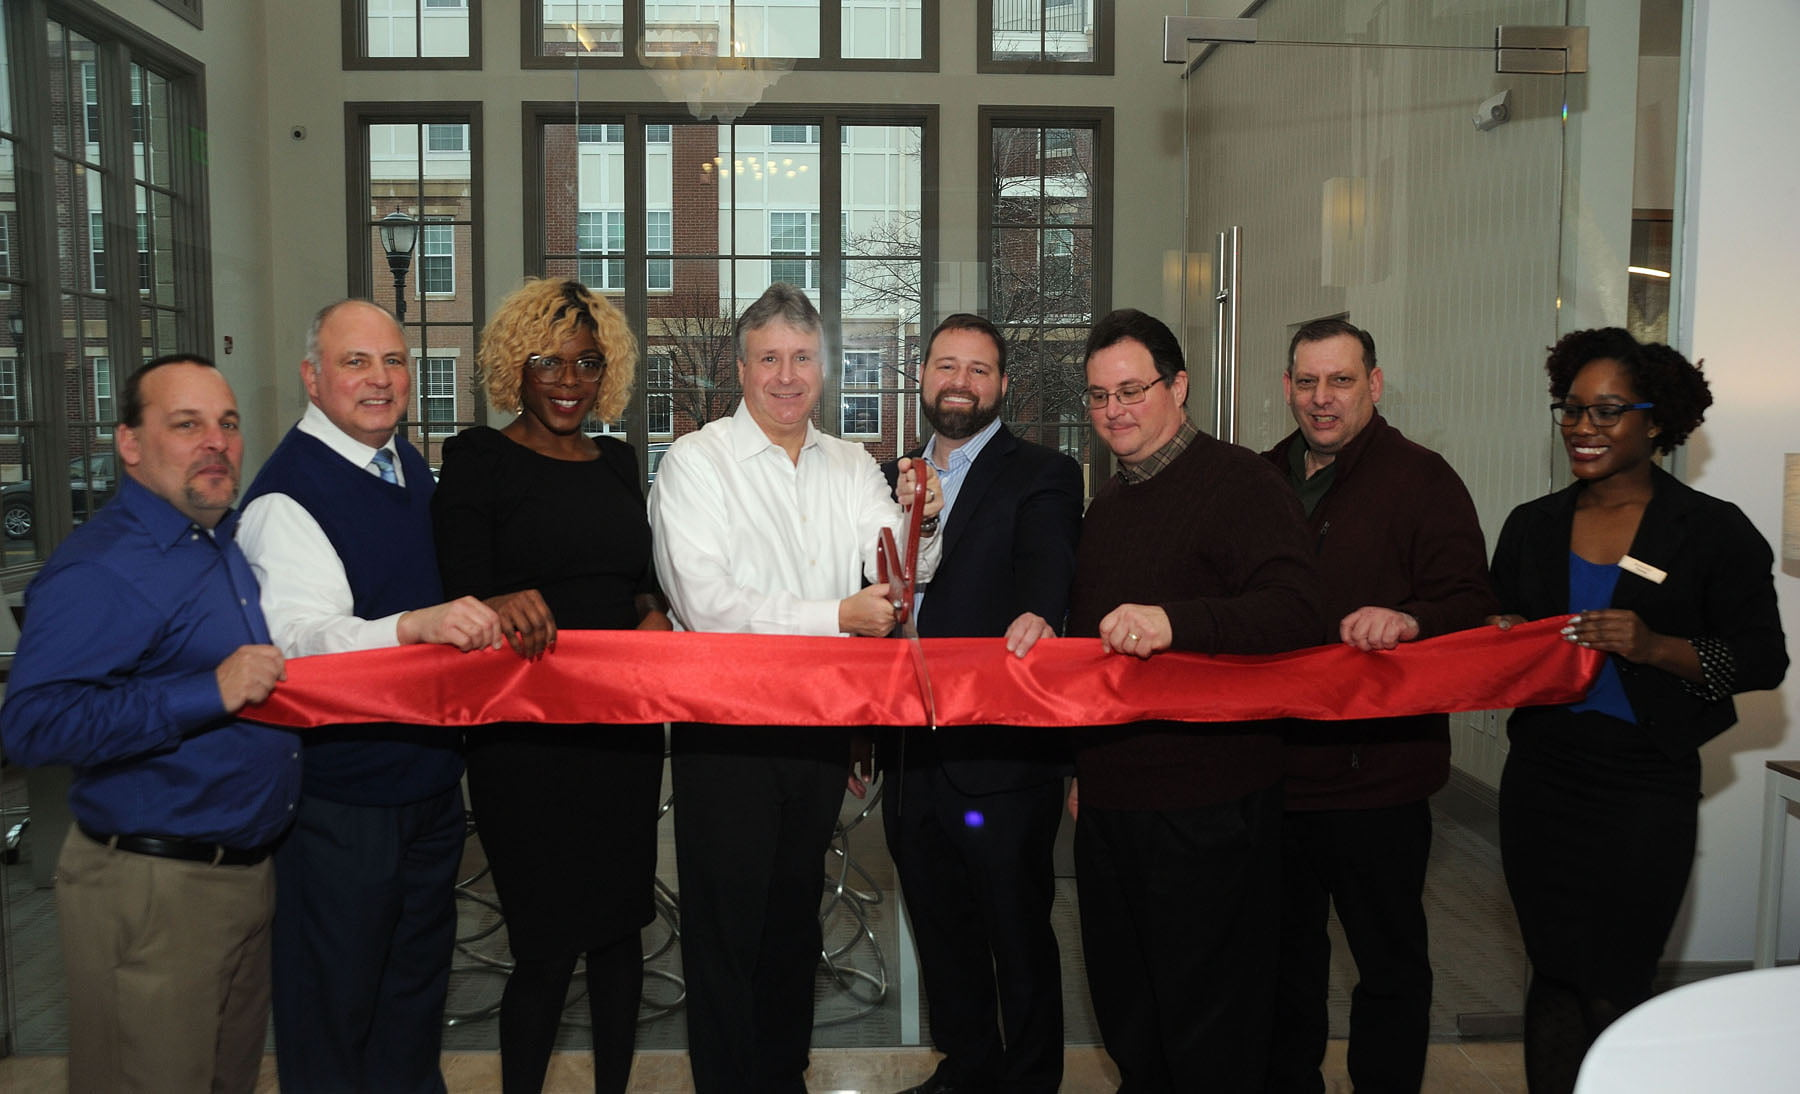 Bayonne Mayor Officiates Grand Re-opening of 90,000-Square-Foot Resident Clubhouse at Harbor Pointe Apartments